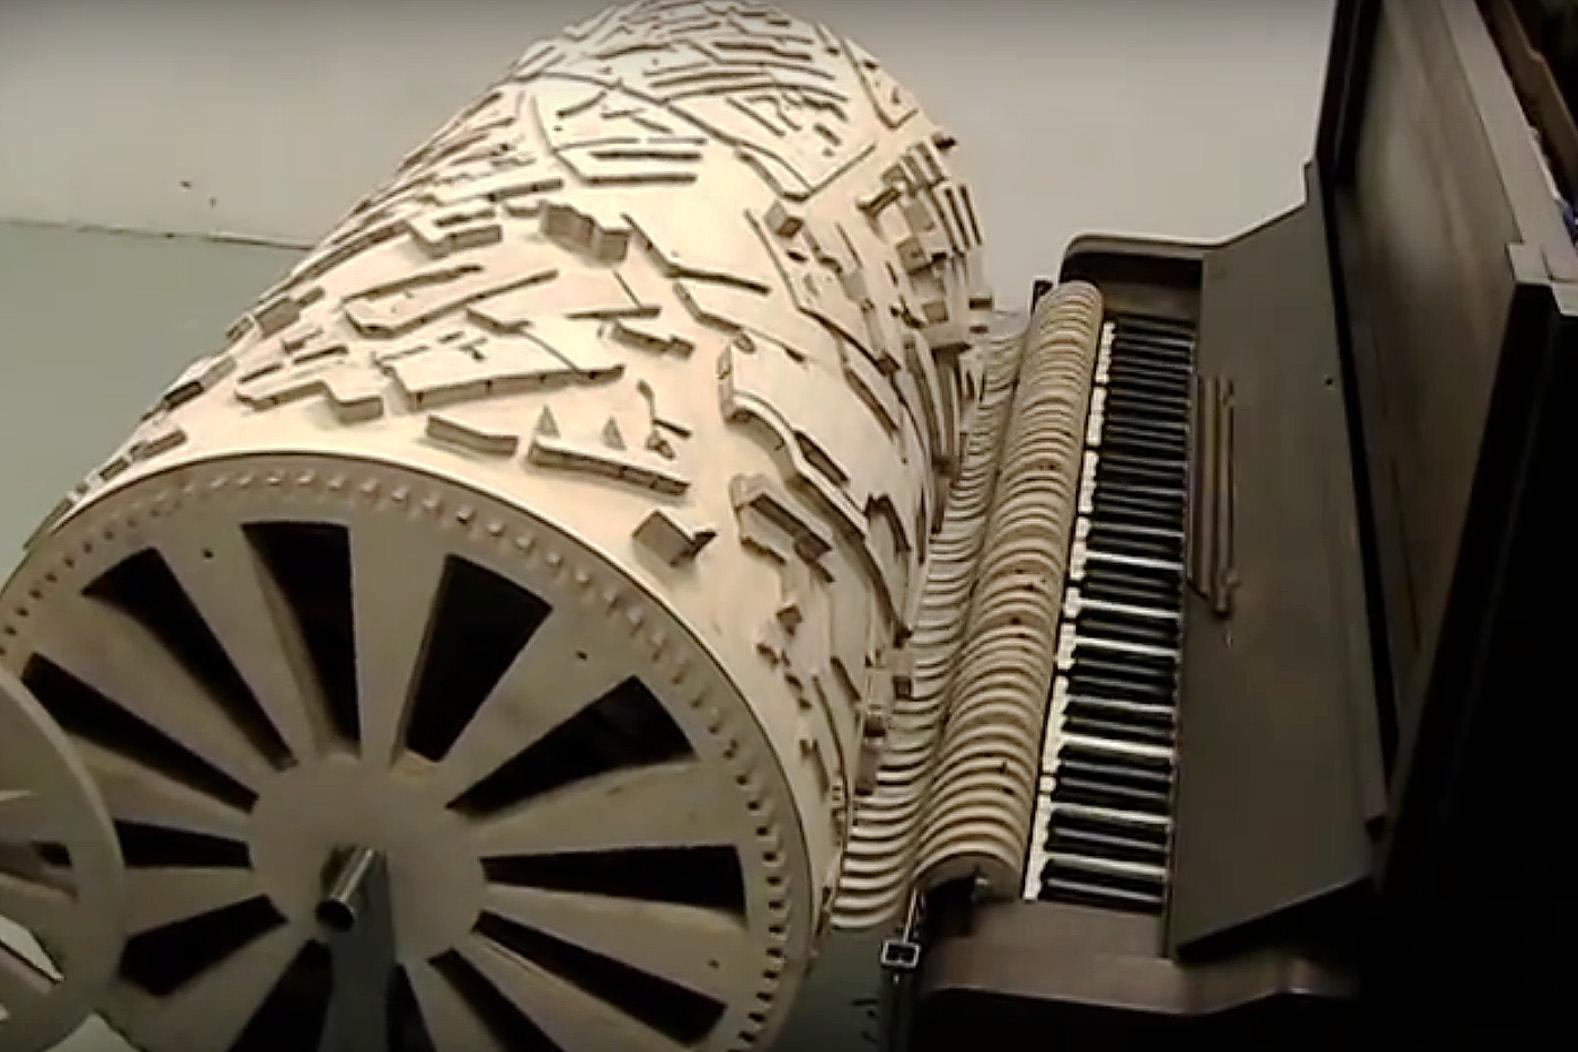 Watch How a Cityscape Composes Its Own Song on a Player Piano